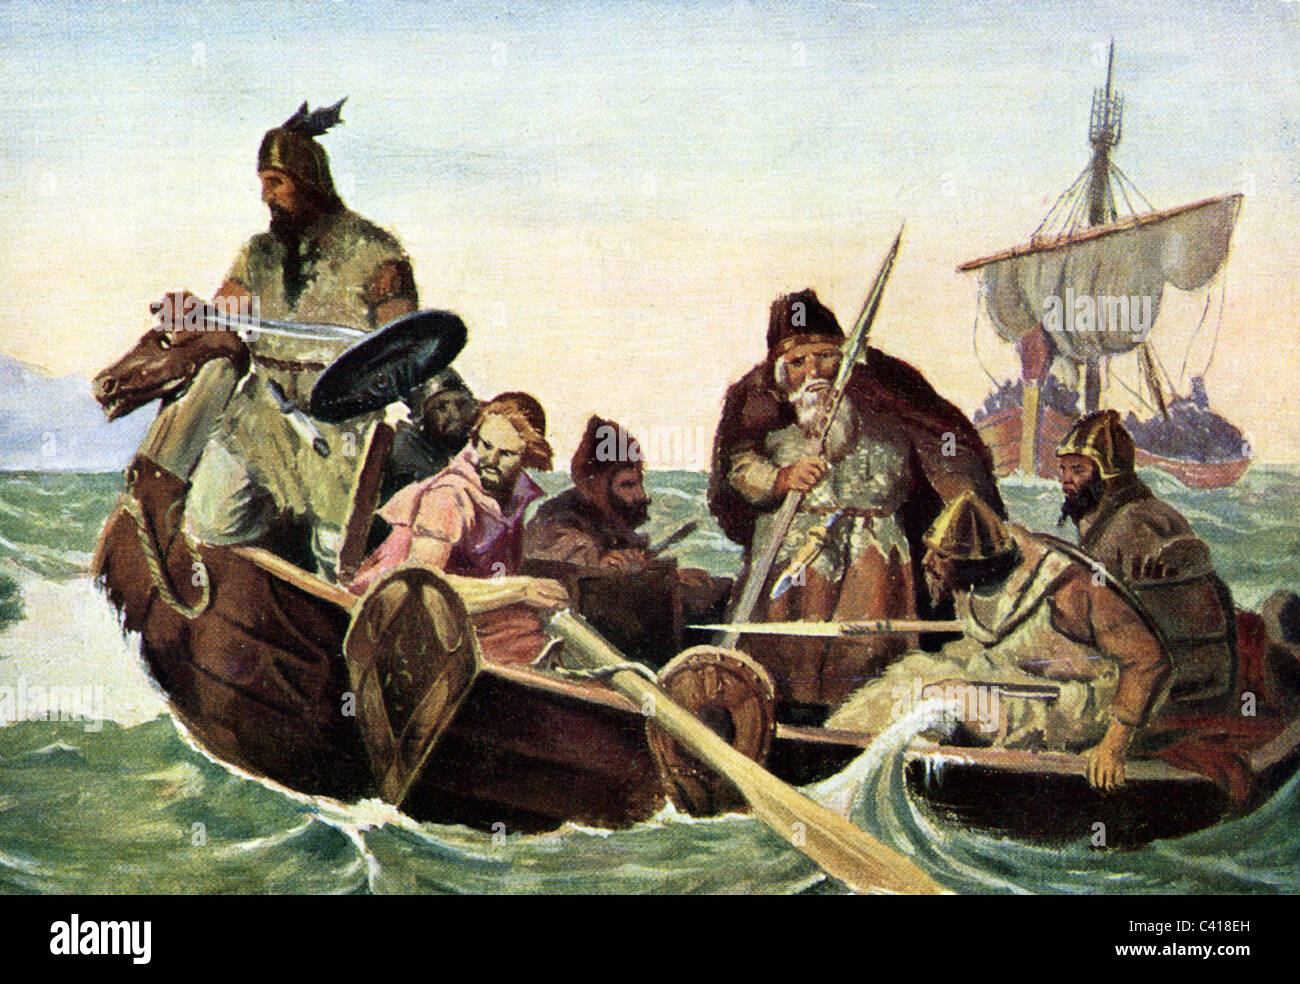 Middle Ages Vikings Stock Photos & Middle Ages Vikings Stock ...